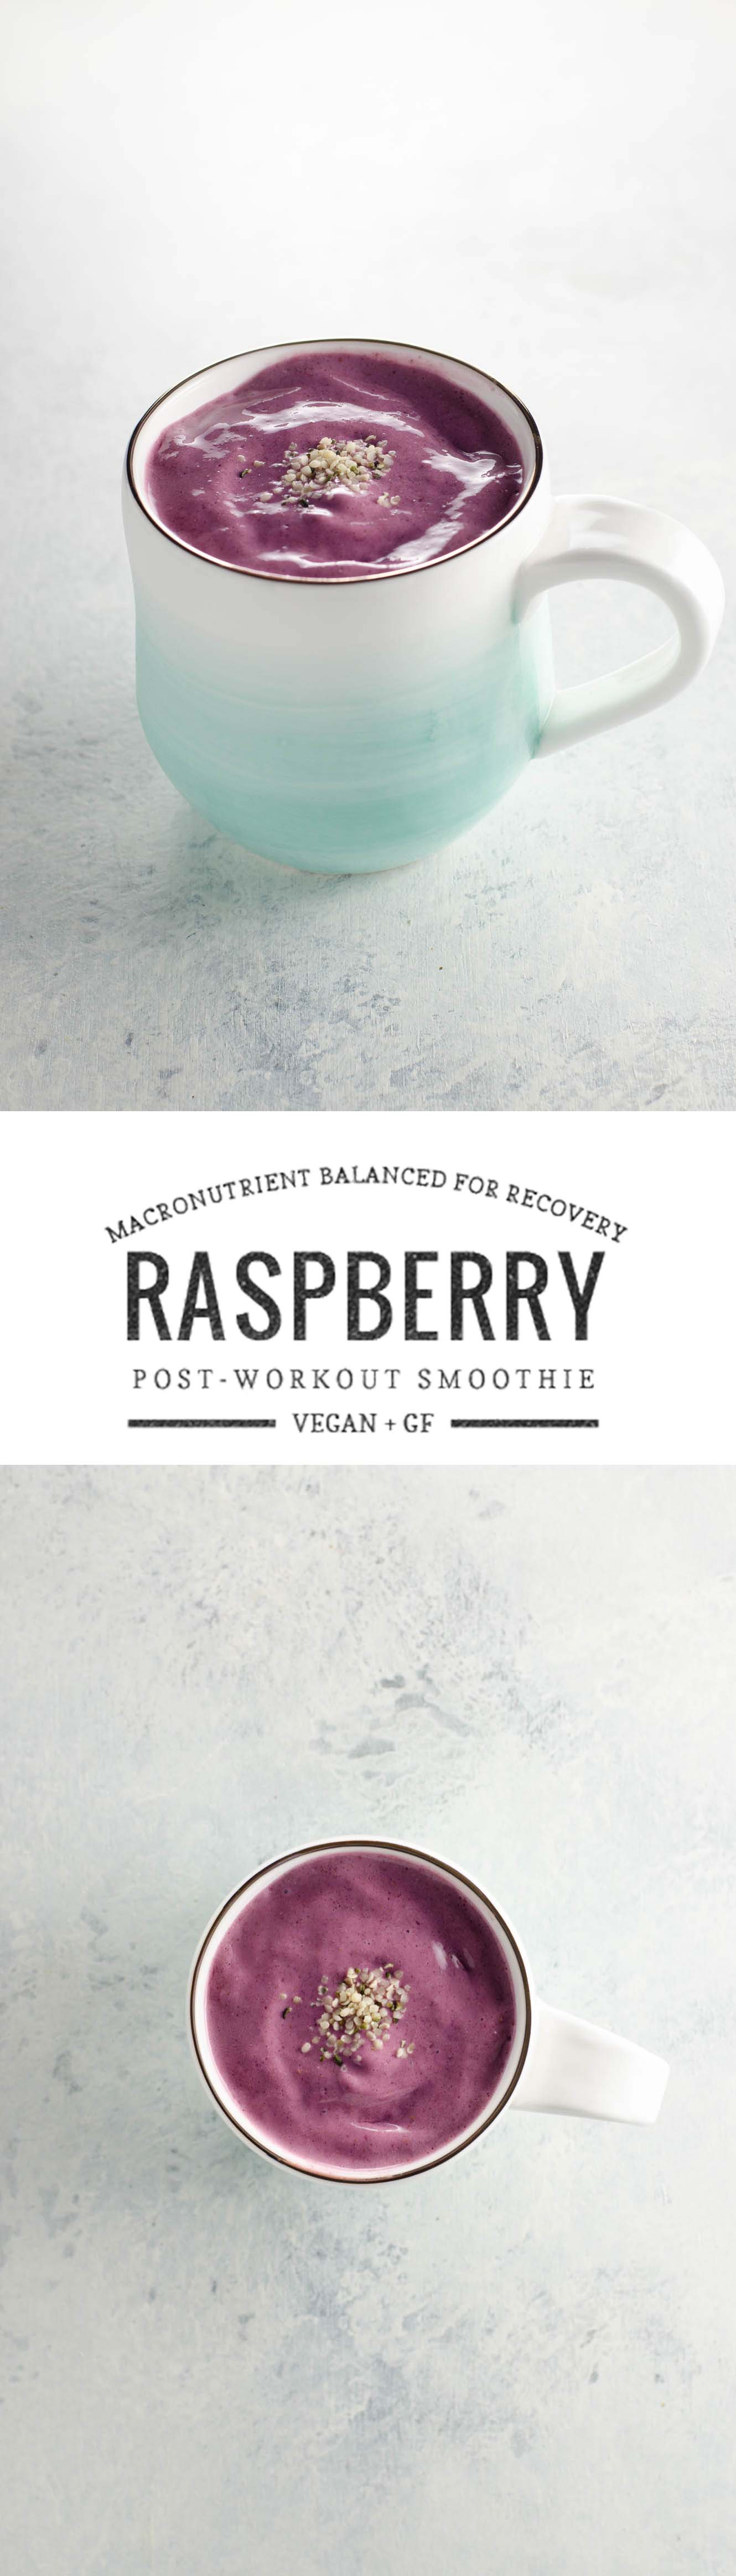 Raspberry Chia Post Workout Smoothie | Umami Girl